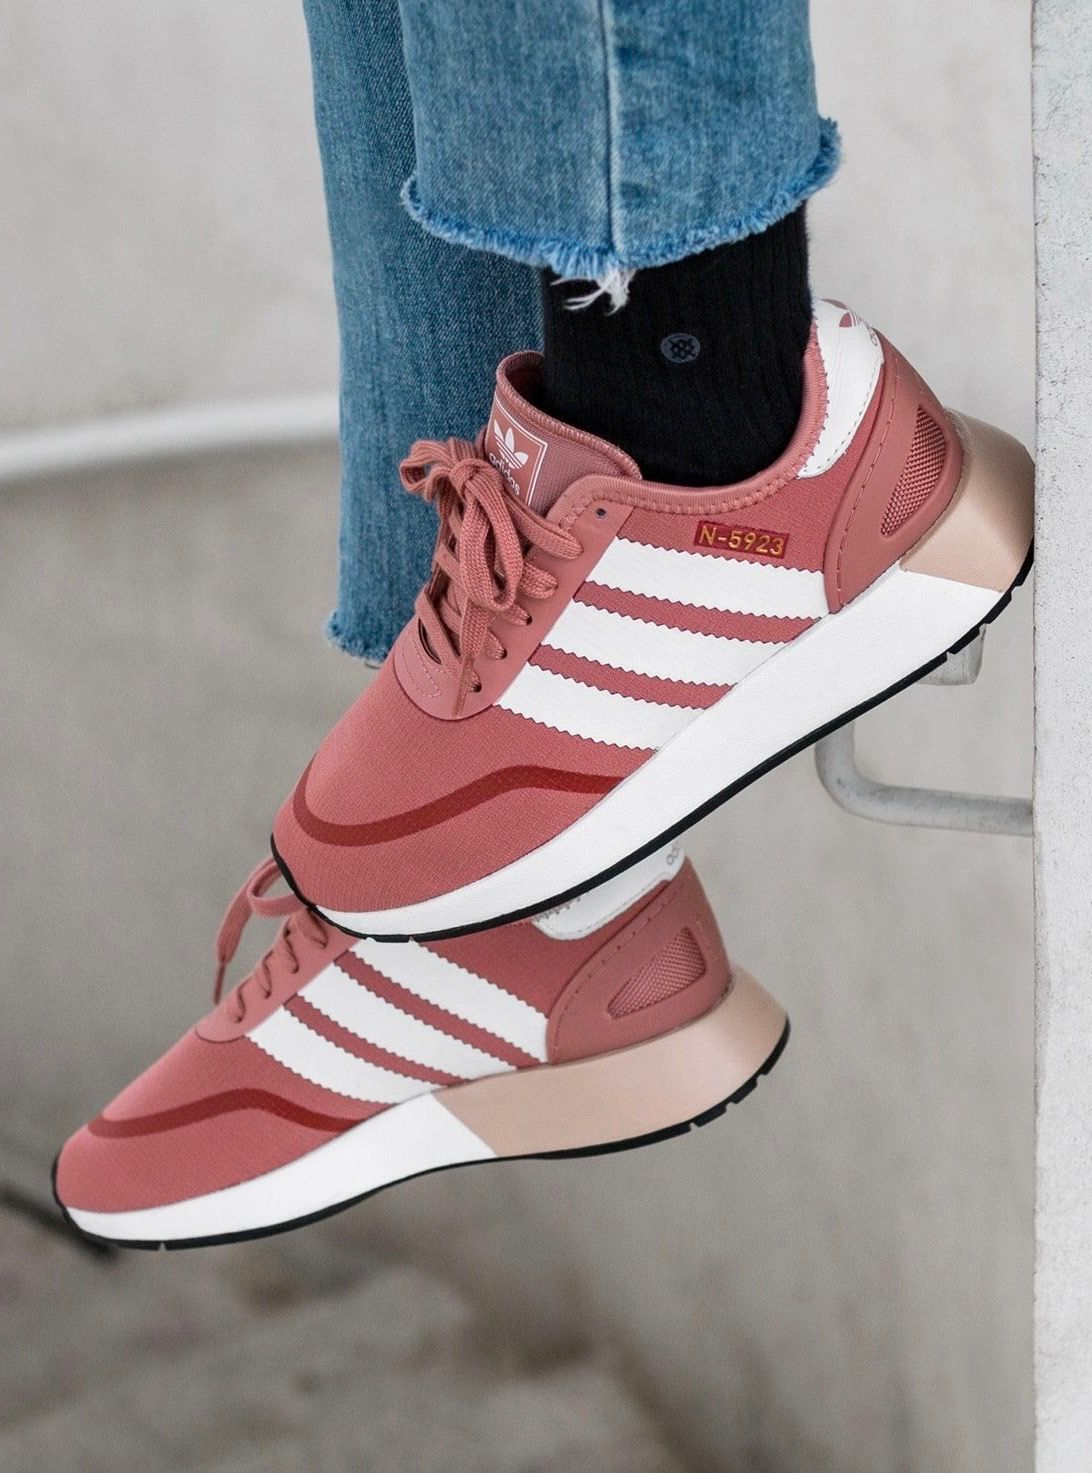 Originals Pink 2019 Sneakers Adidas Adidas Shoes 5923 N In dTnwtqU